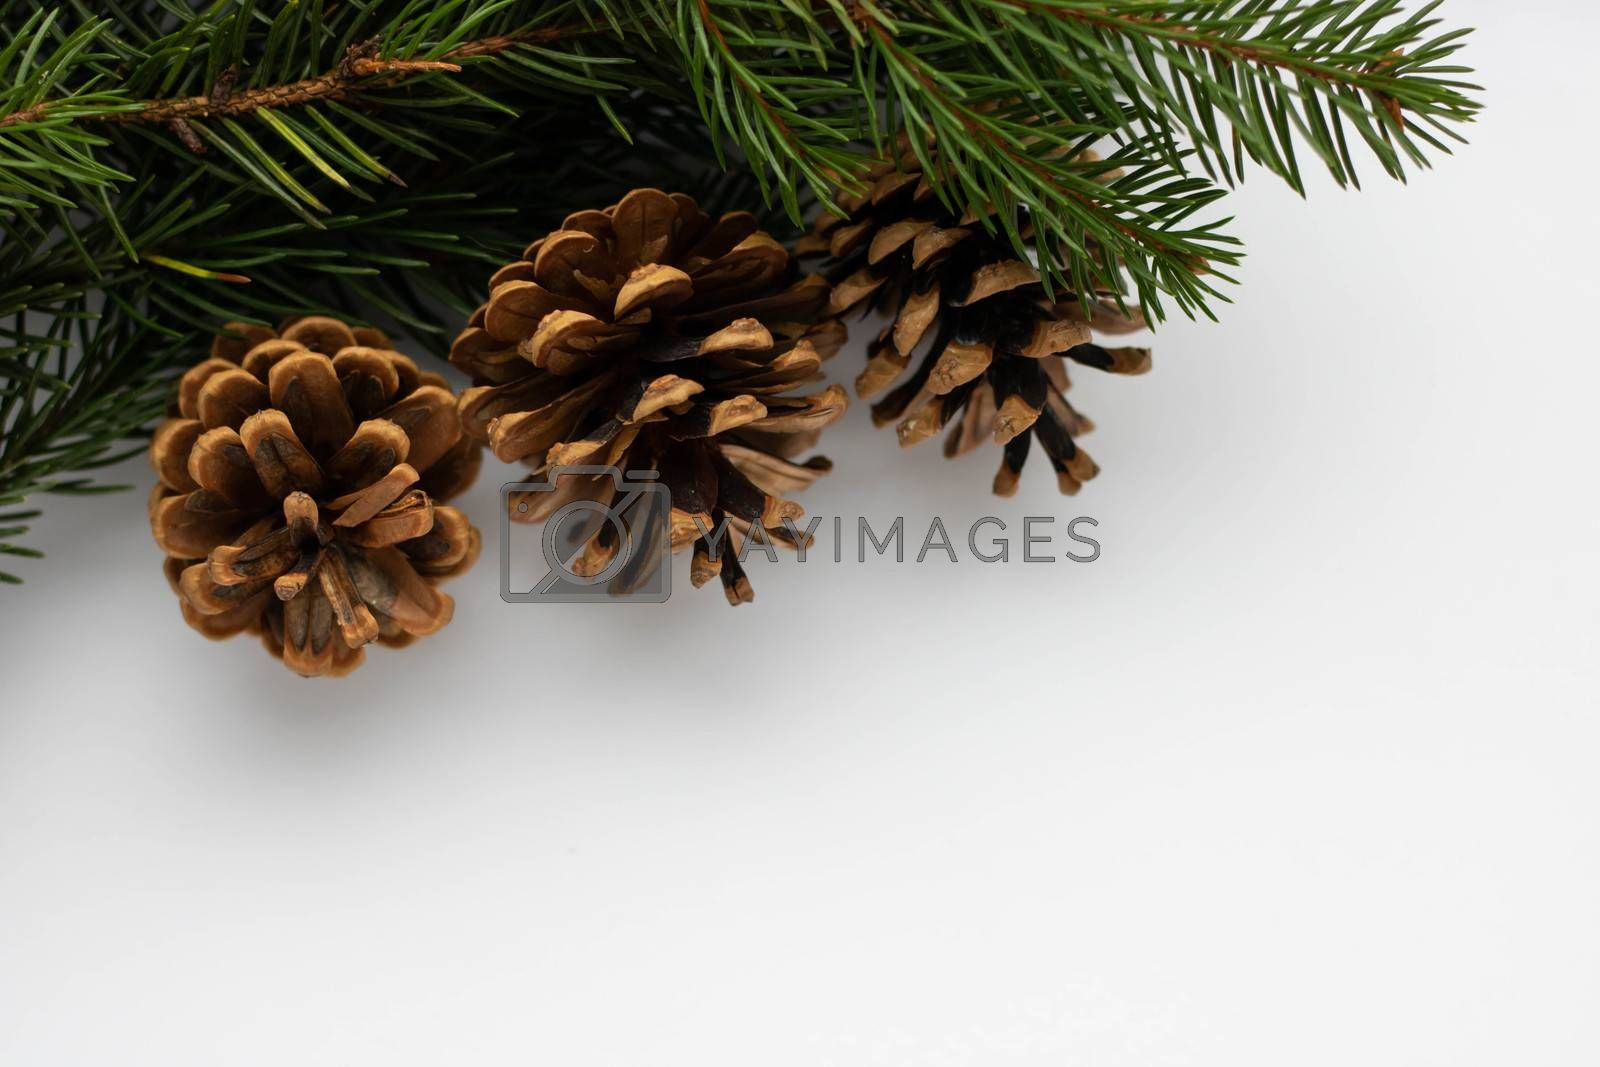 Christmas composition. Christmas silver decorations on white background.